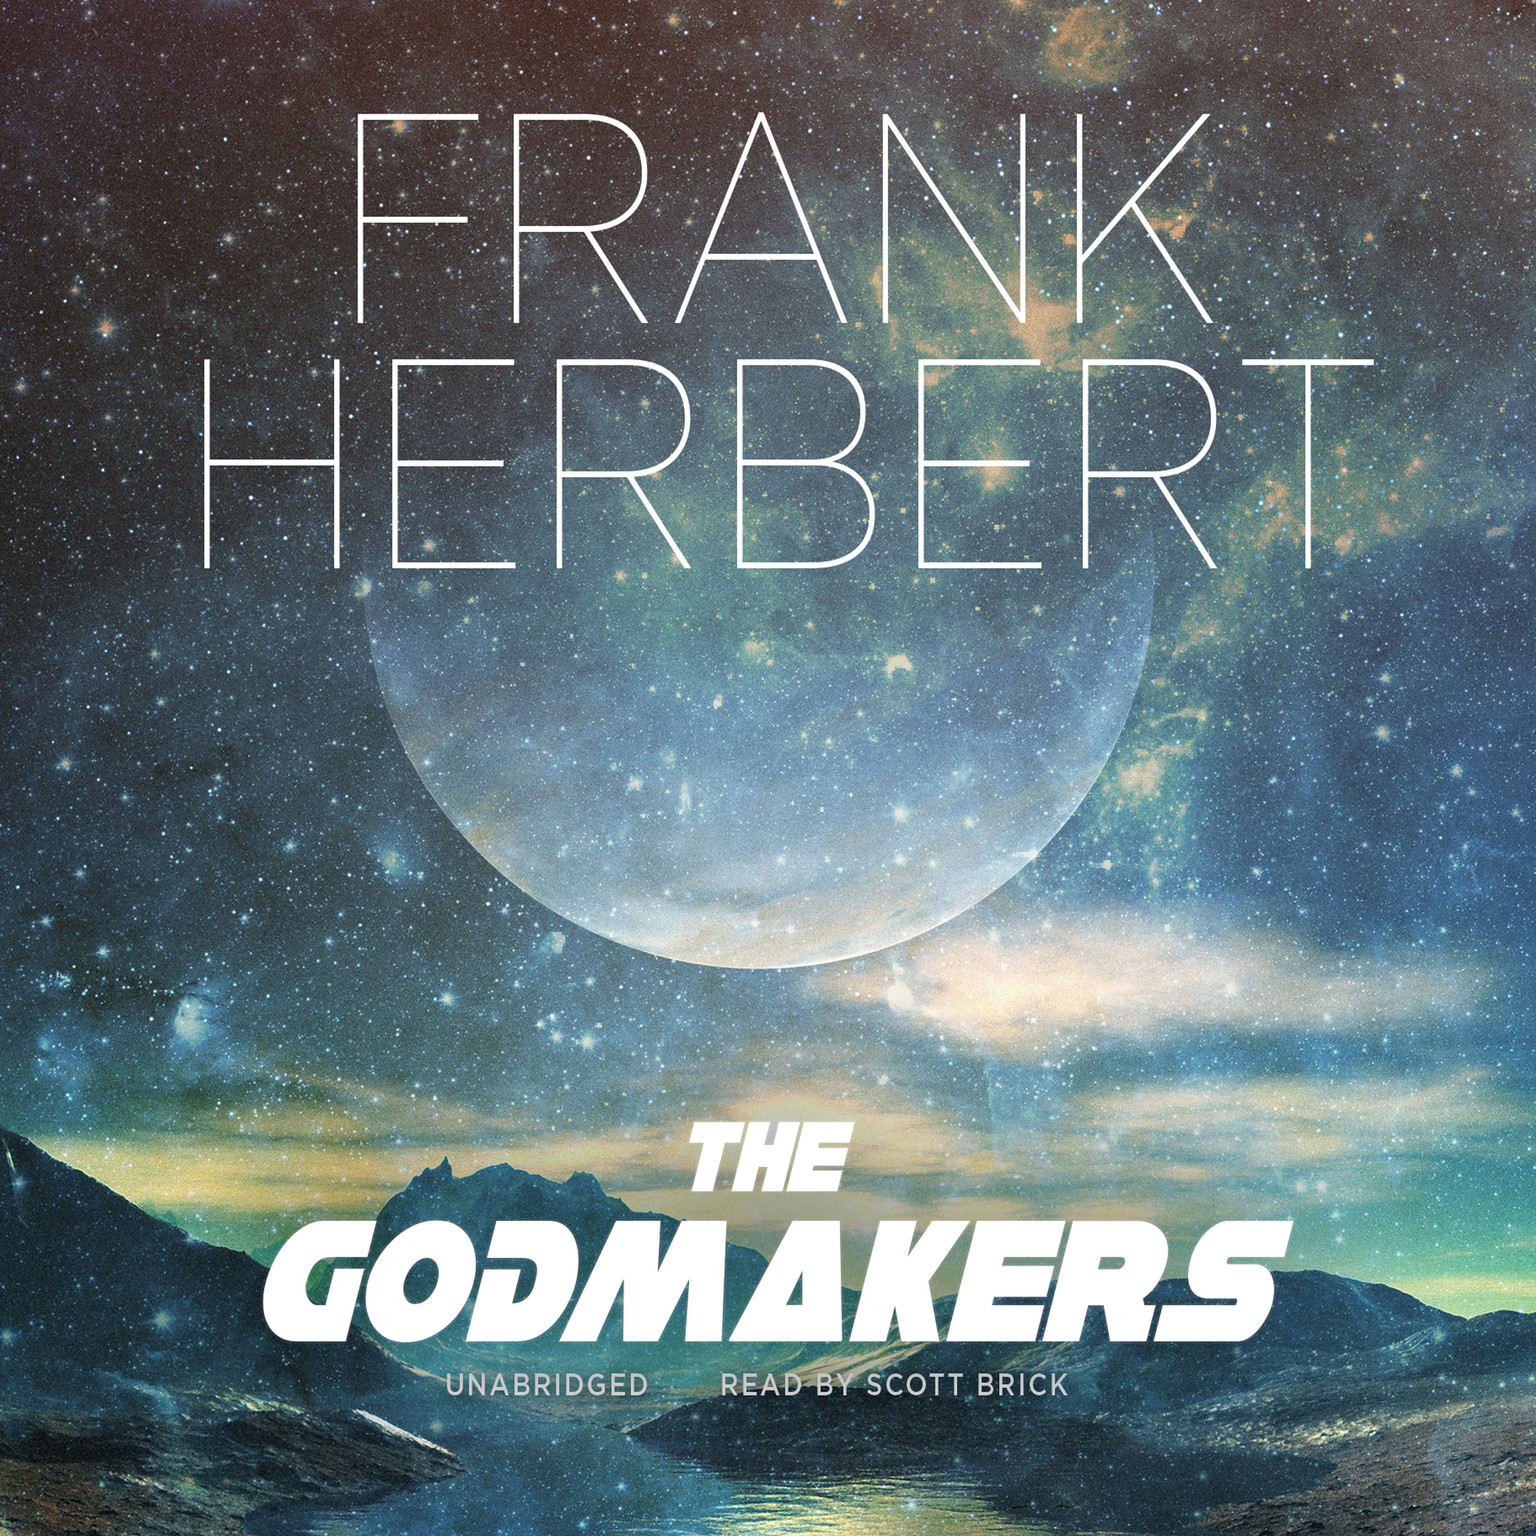 Printable The Godmakers Audiobook Cover Art